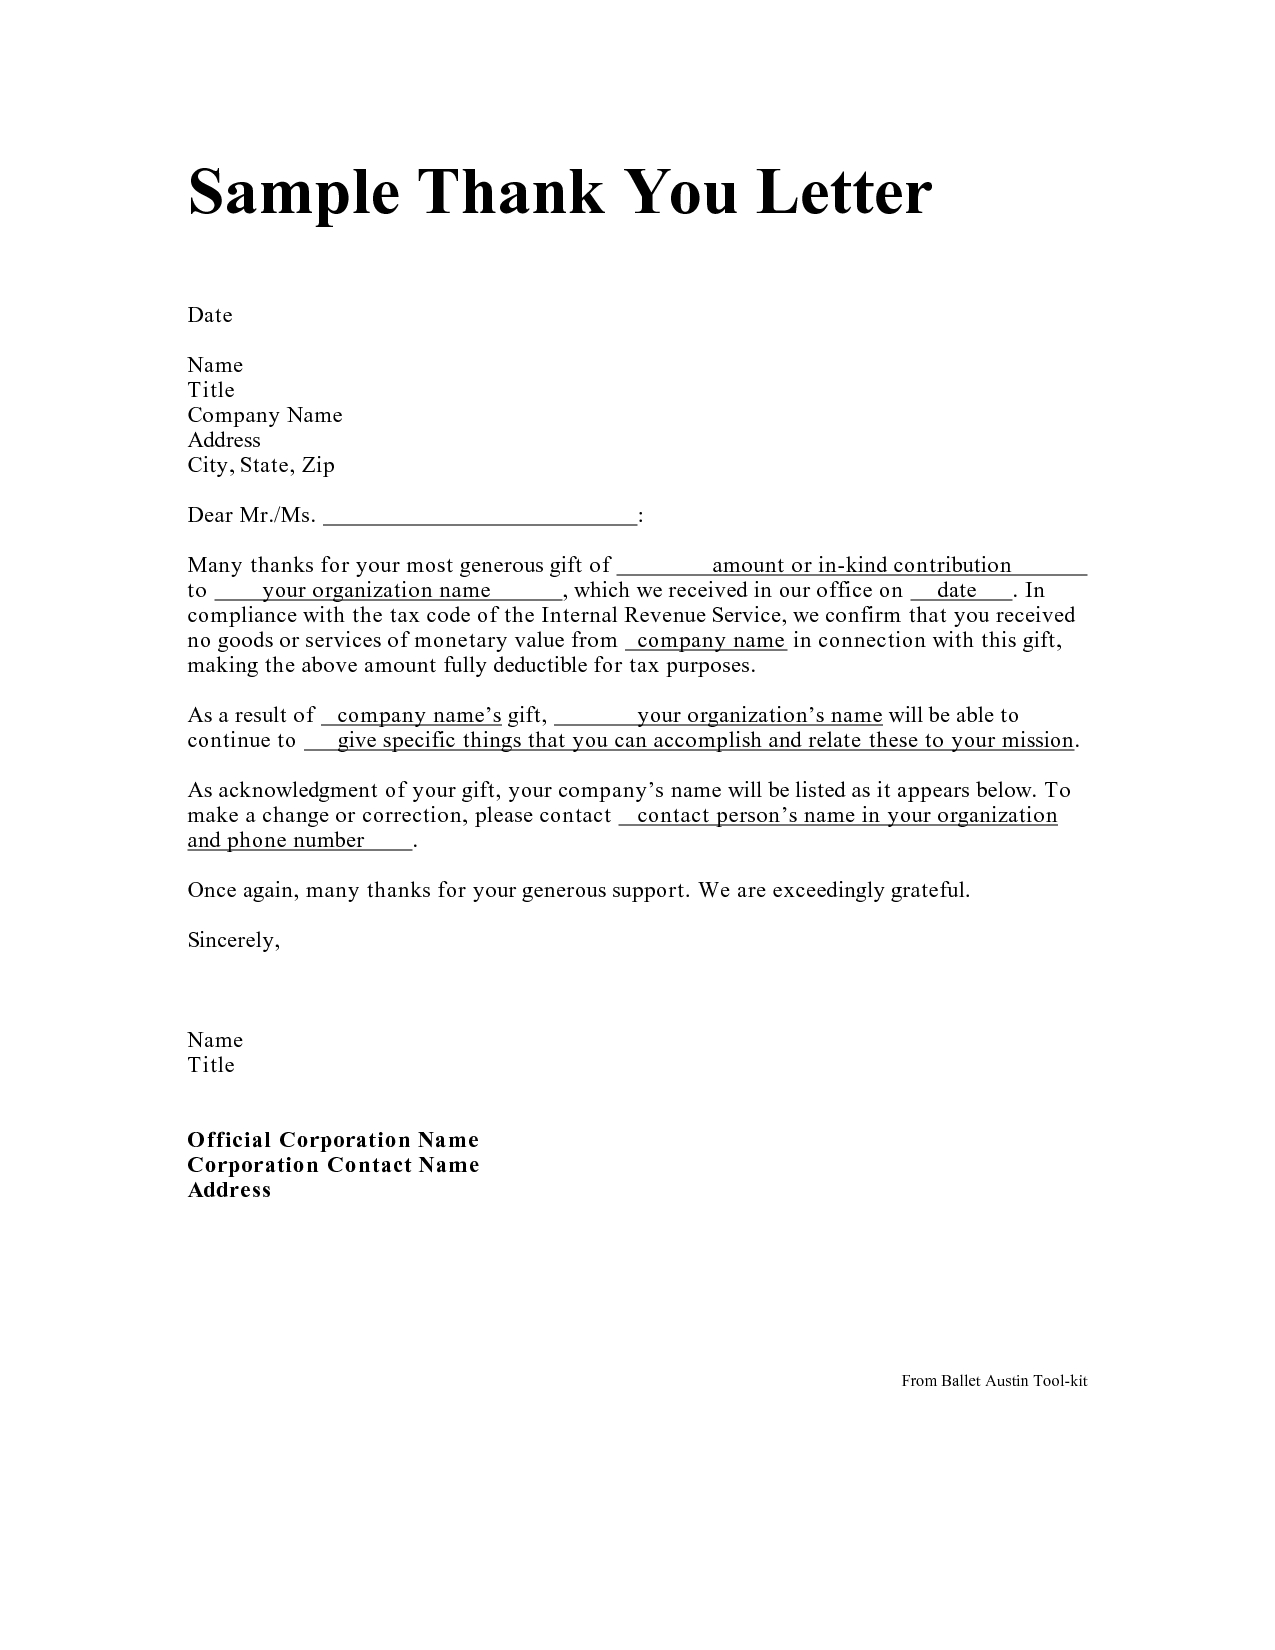 Monetary Donation Letter Template - Personal Thank You Letter Personal Thank You Letter Samples